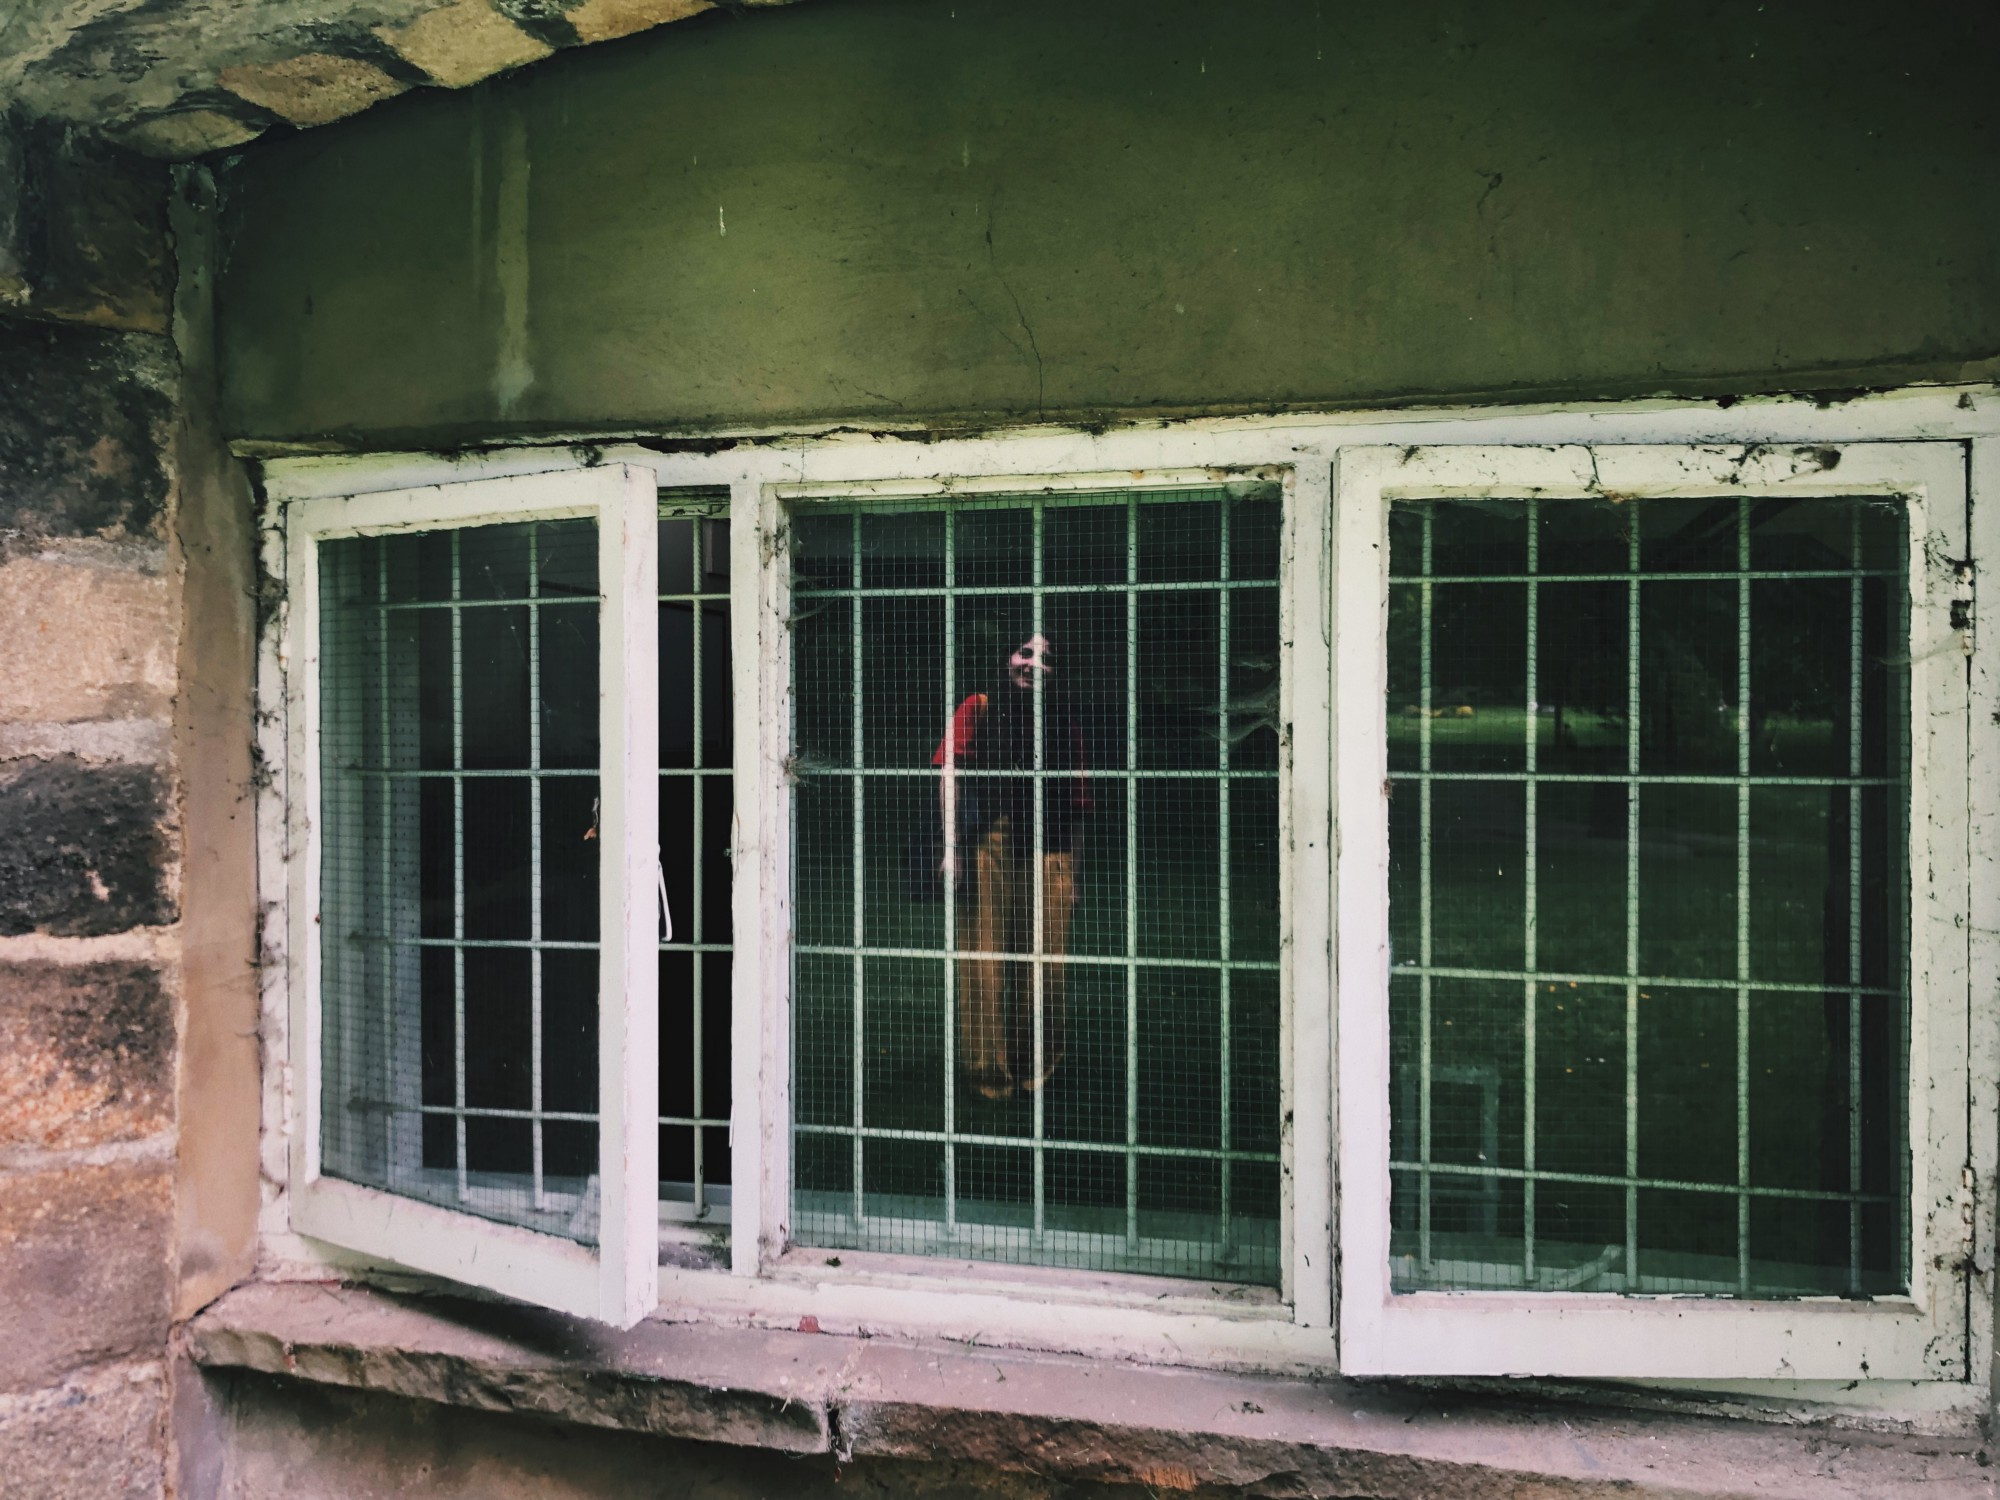 Image of Hayat Sebep reflected in old-fashioned window